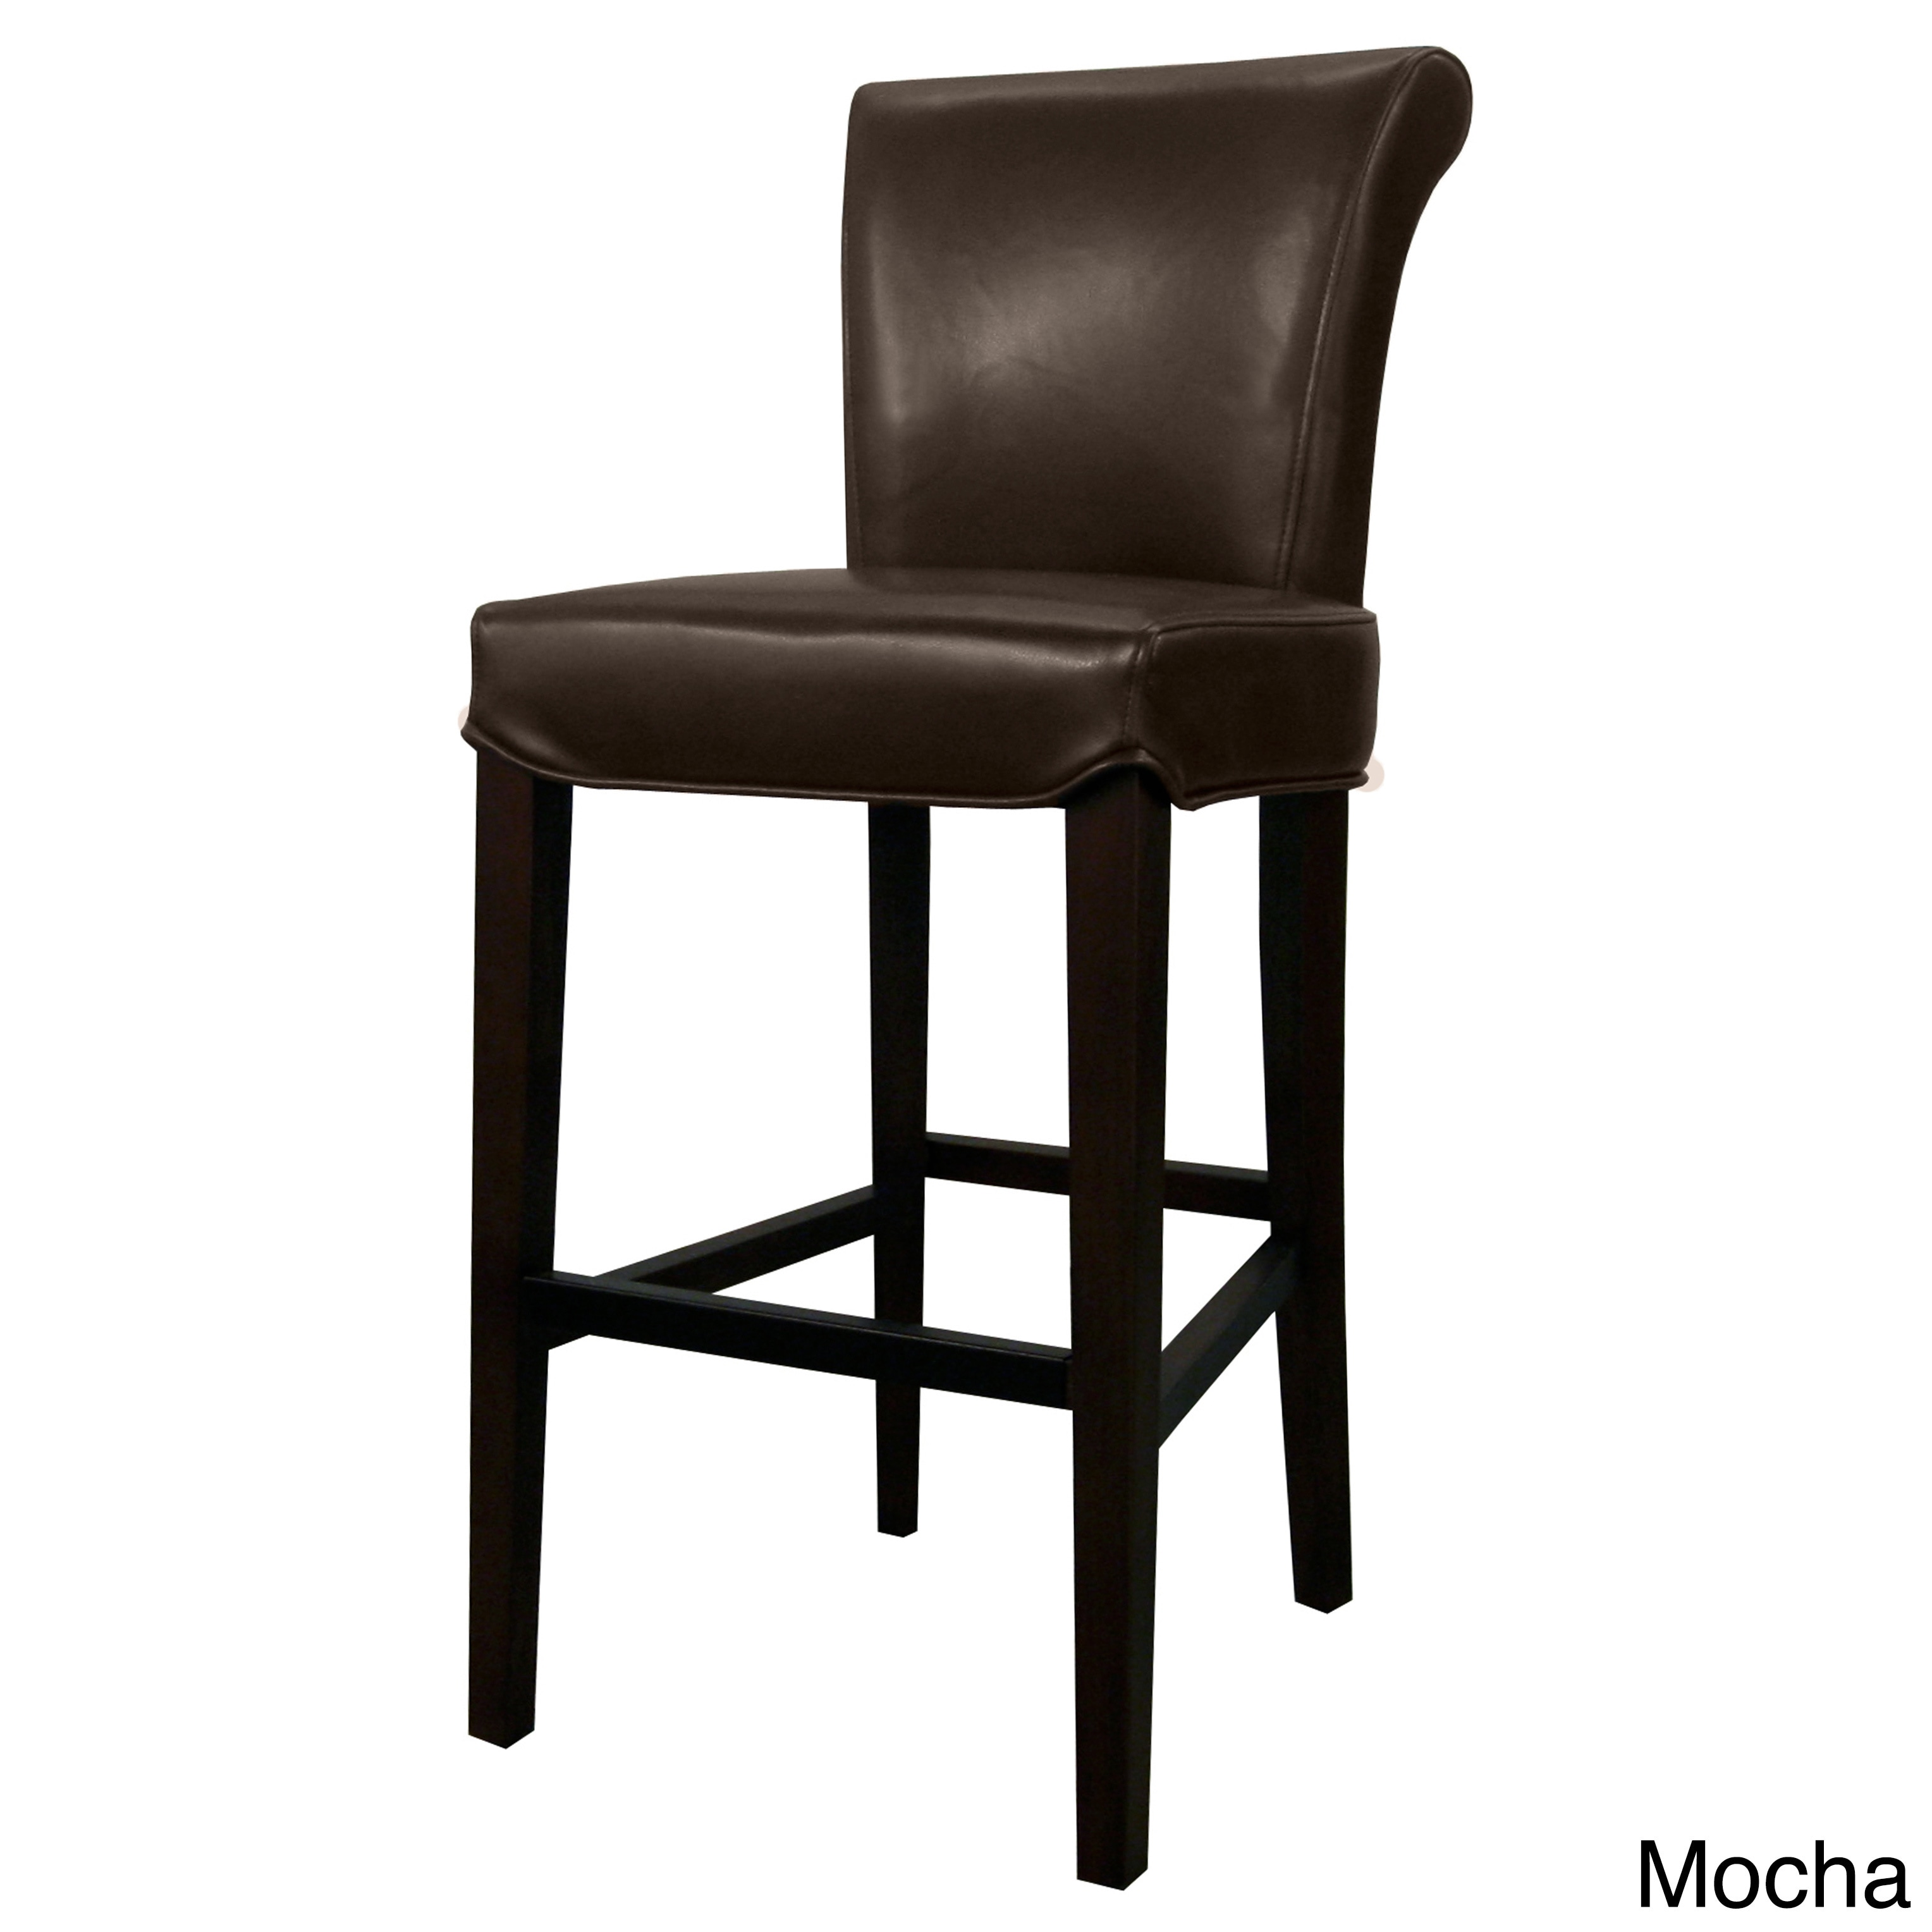 Shop bentley leather counter stool free shipping today overstock com 10246266